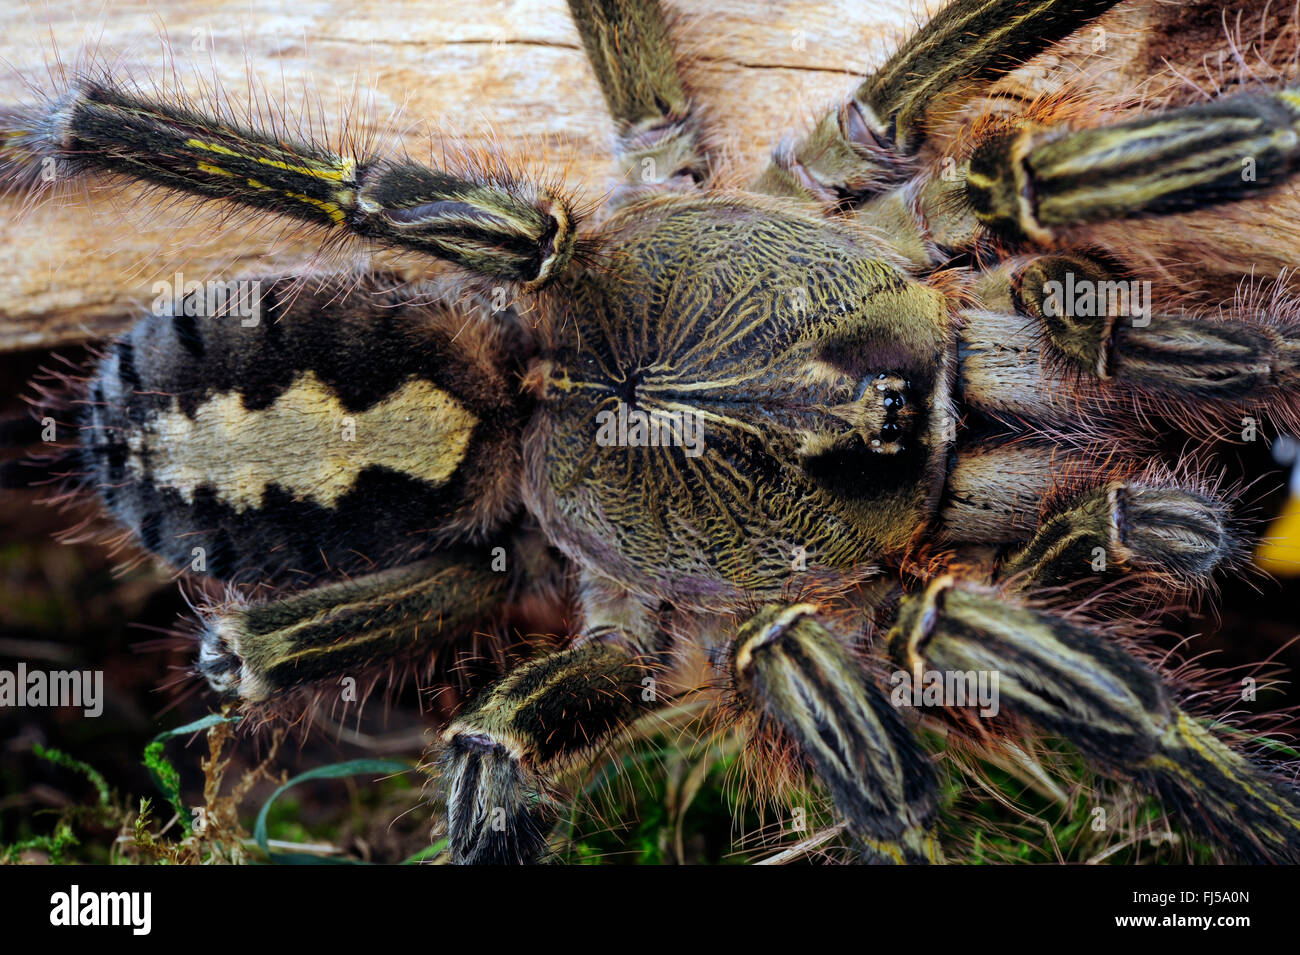 Redslate tarantula ornementales (Poecilotheria rufilata), vue du dessus, close-up, de l'Inde Photo Stock